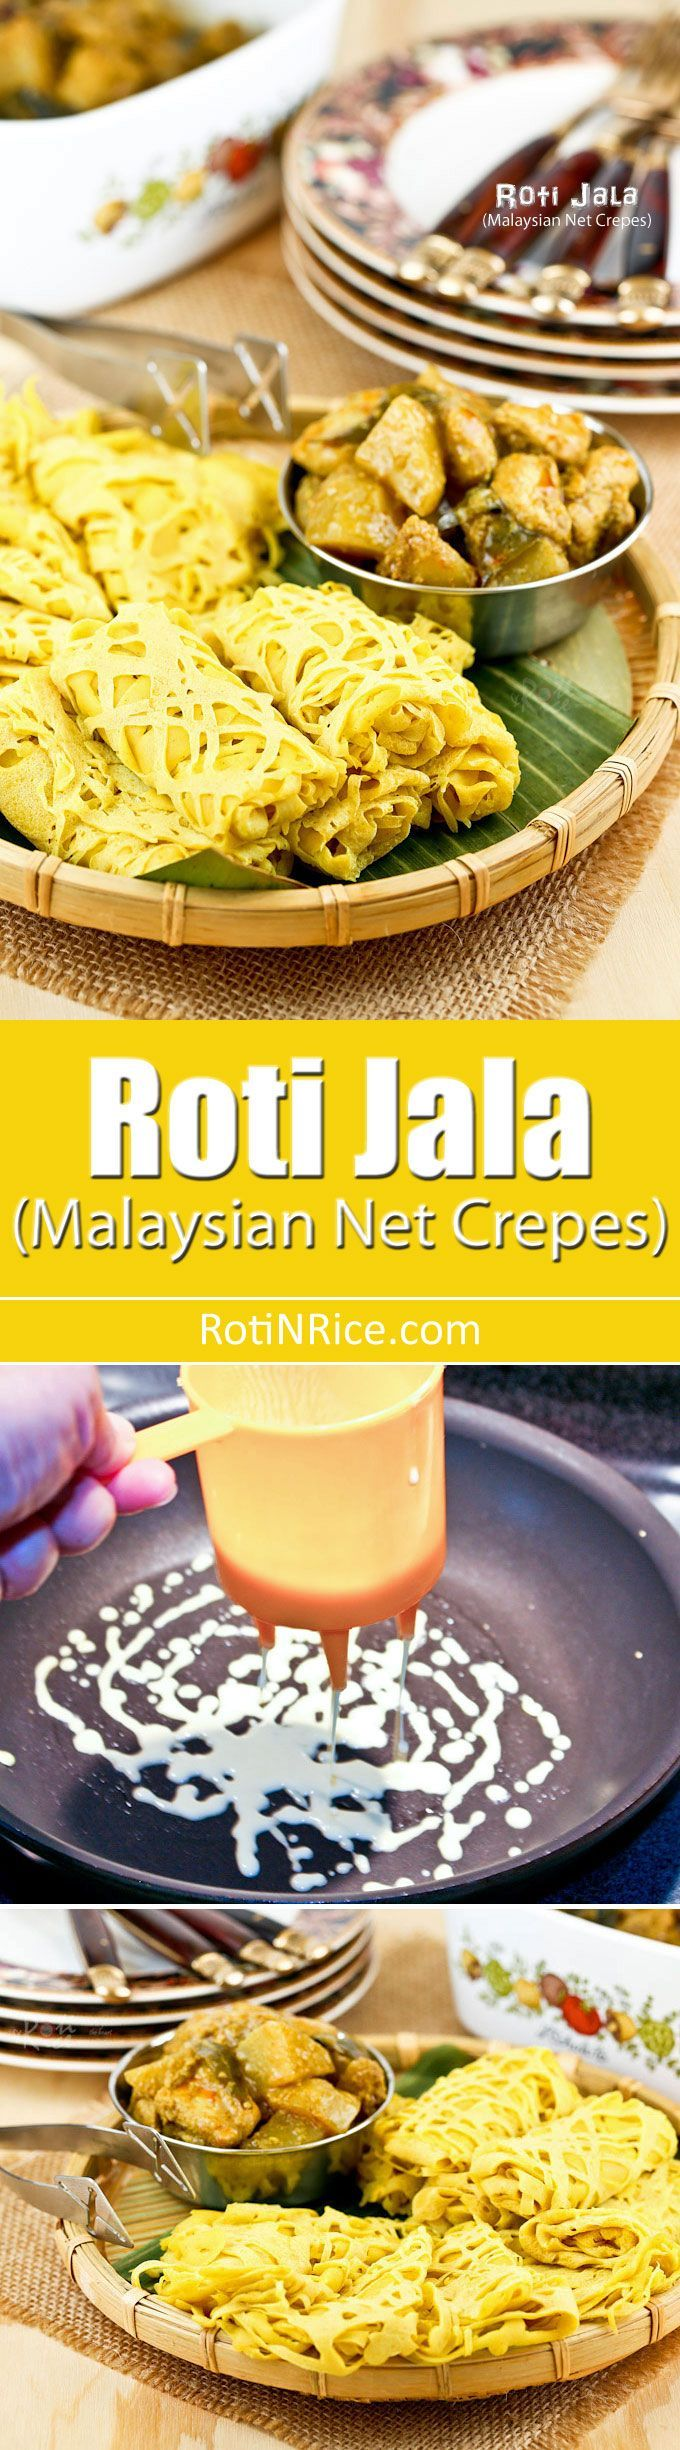 364 best malaysian food images on pinterest indonesian cuisine these tender and delicate roti jala malaysian net crepes are a must try with chicken or beef curry easy to prepare using only a few ingredients forumfinder Choice Image